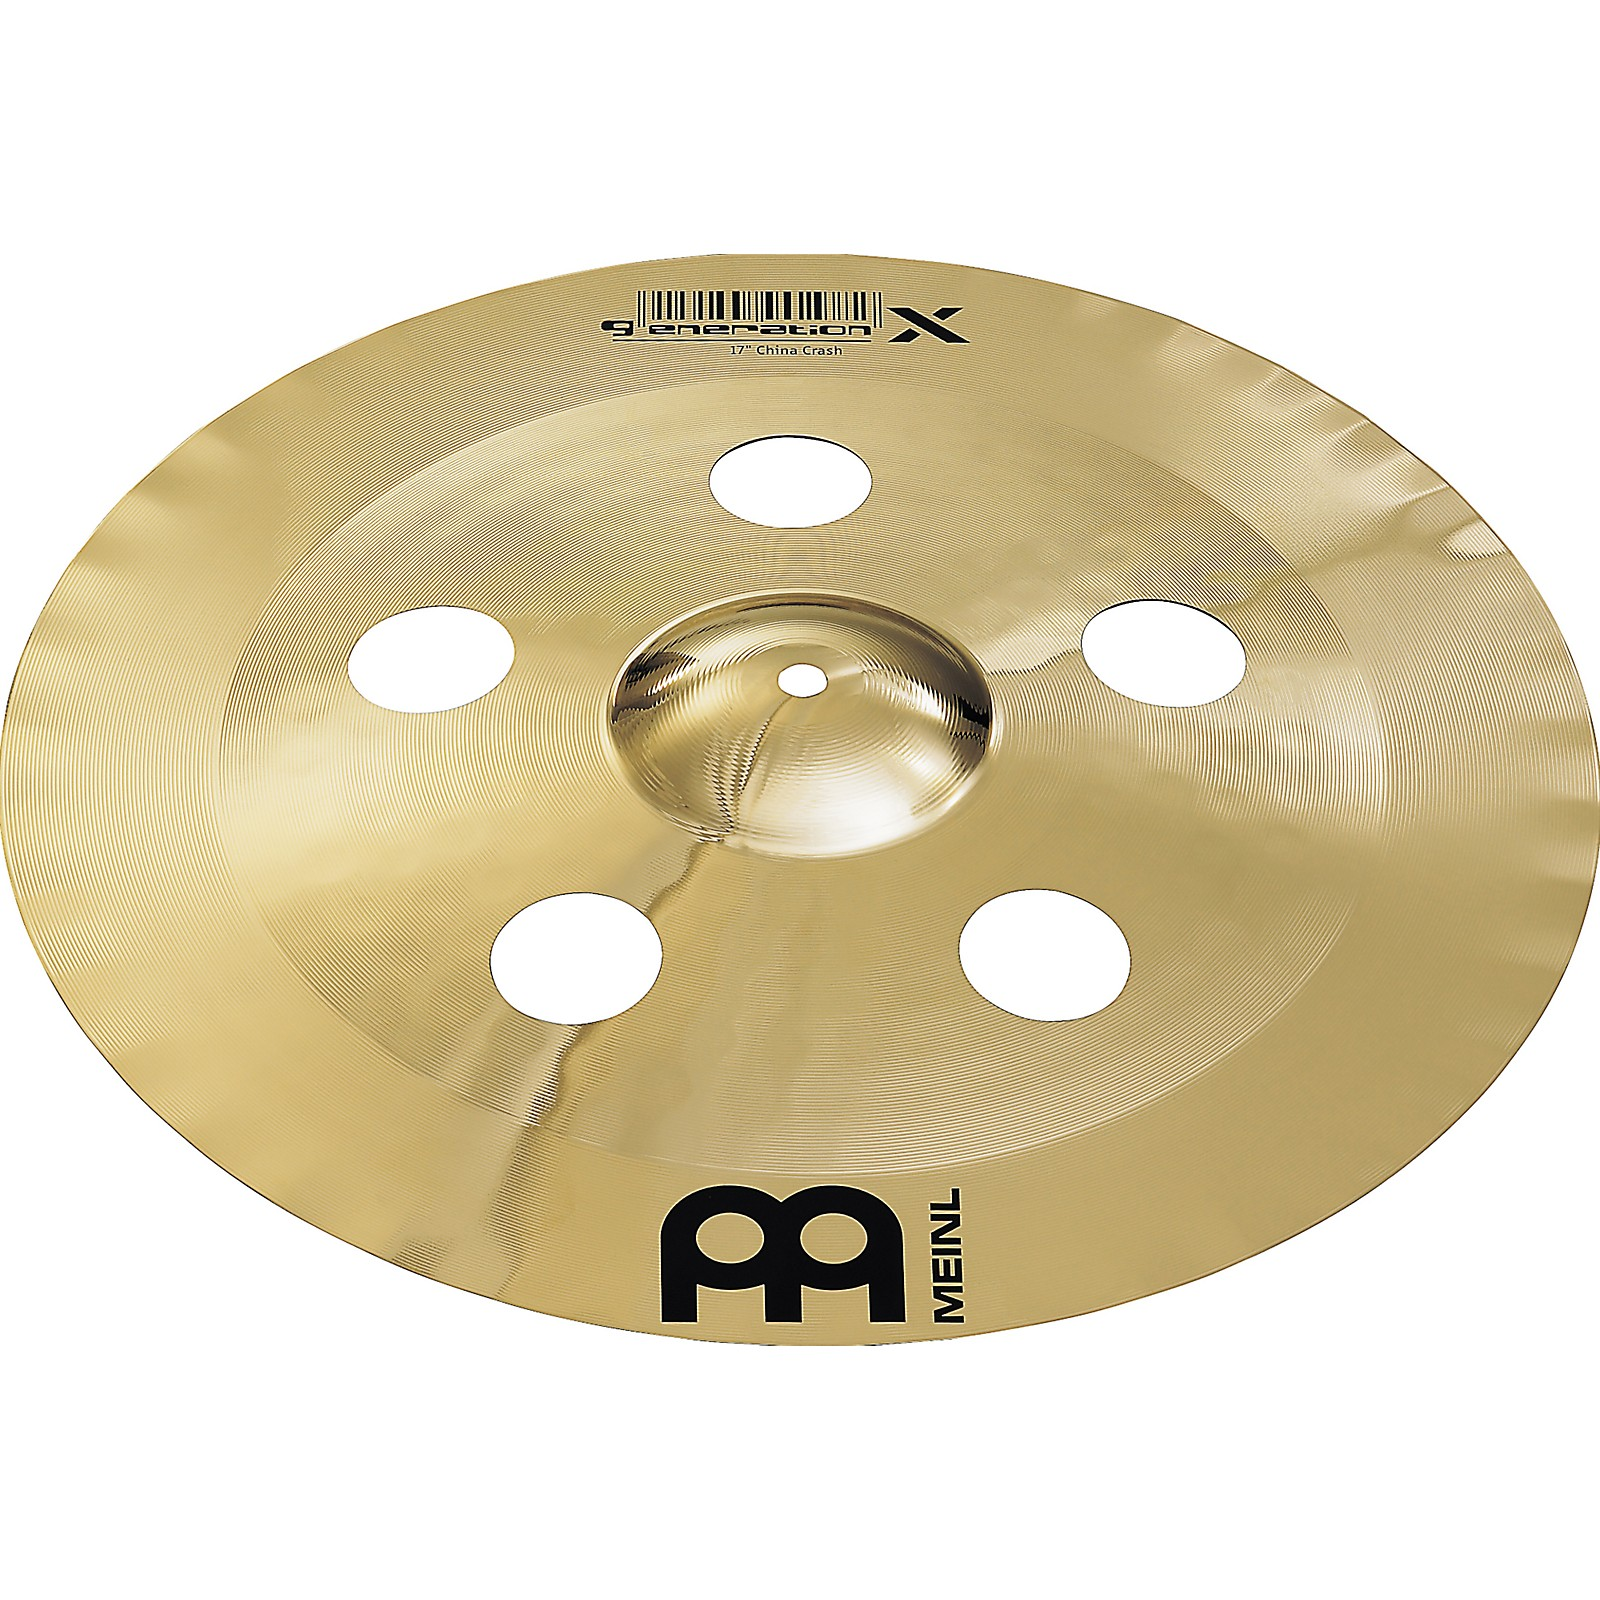 Meinl Generation X China Crash Cymbal